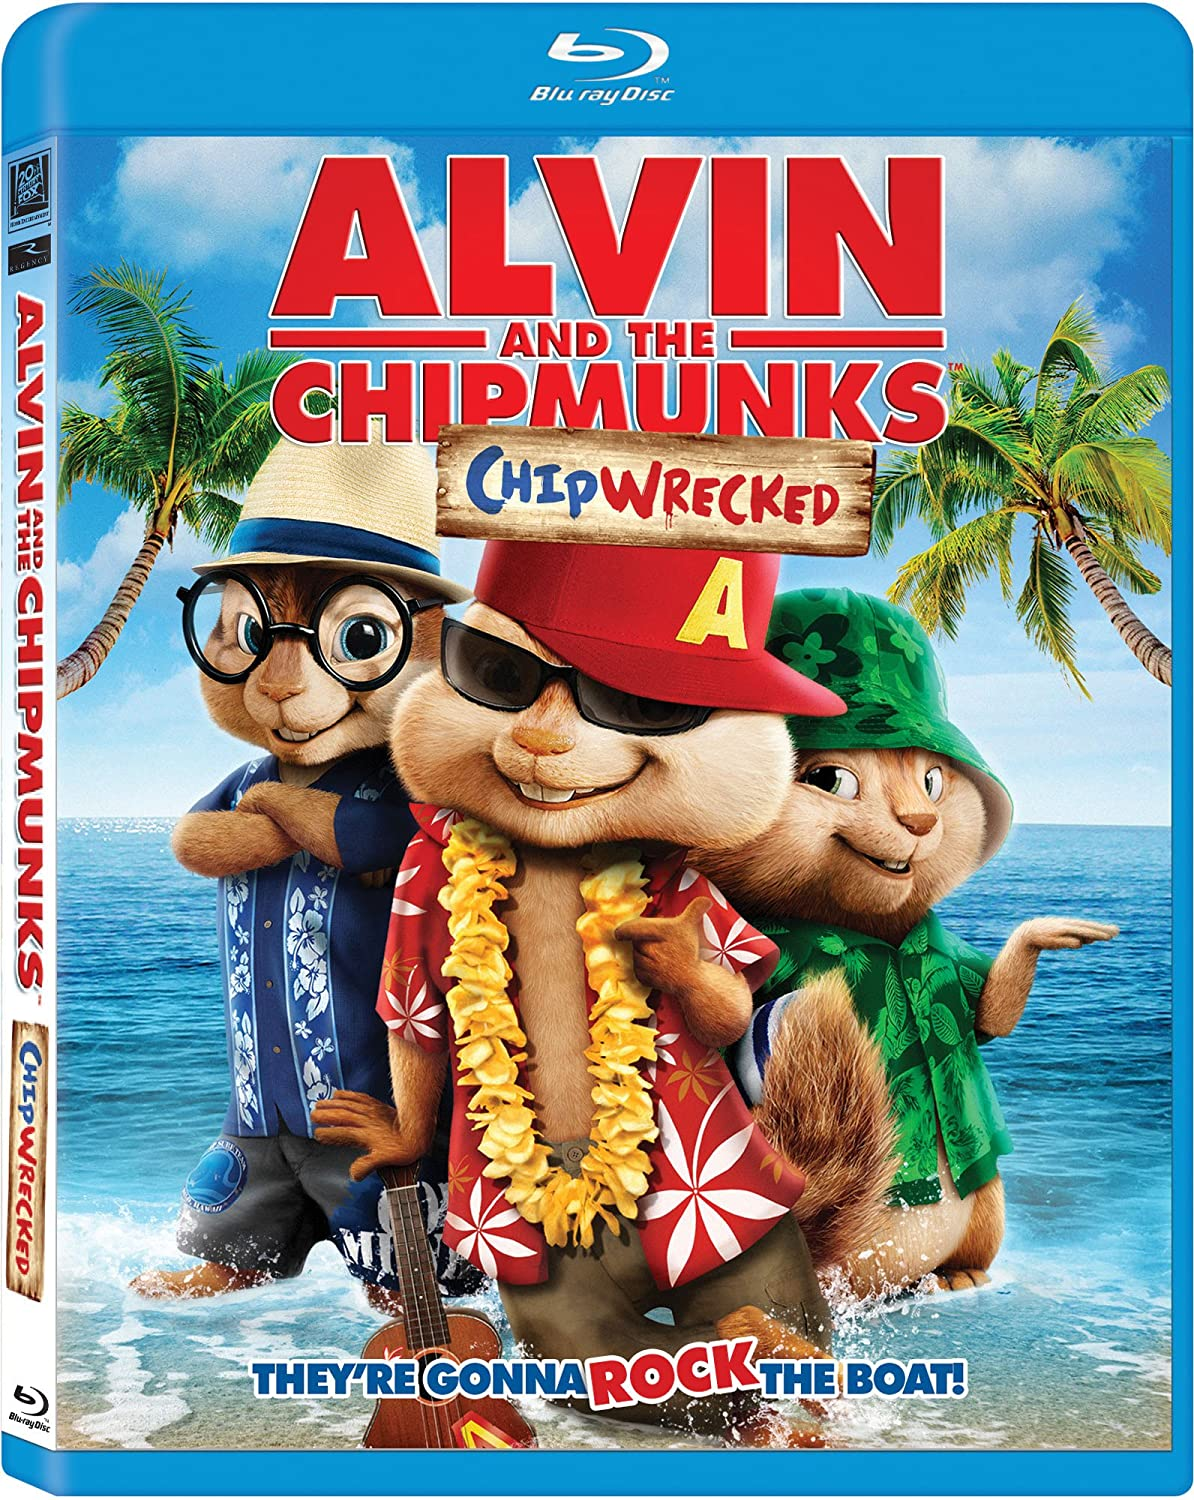 alvin and the chipmunks 3 movie free download